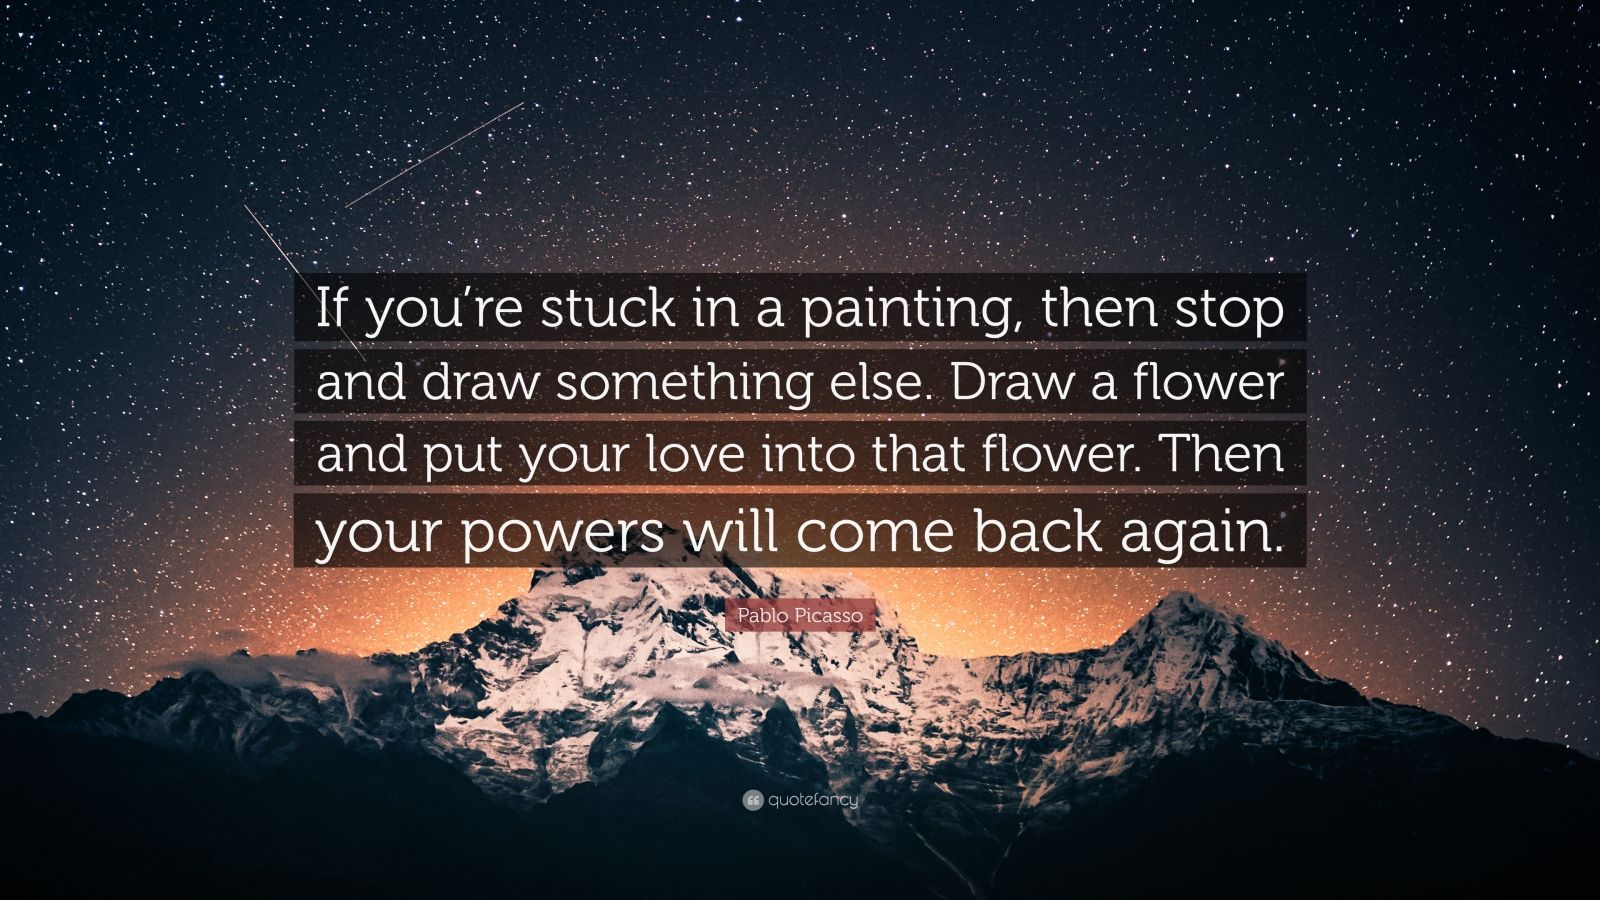 "Pablo Picasso Quote: ""If you're stuck in a painting, then stop and draw something else. Draw a flower and put your love into that flower. Then your powers will come back again."""